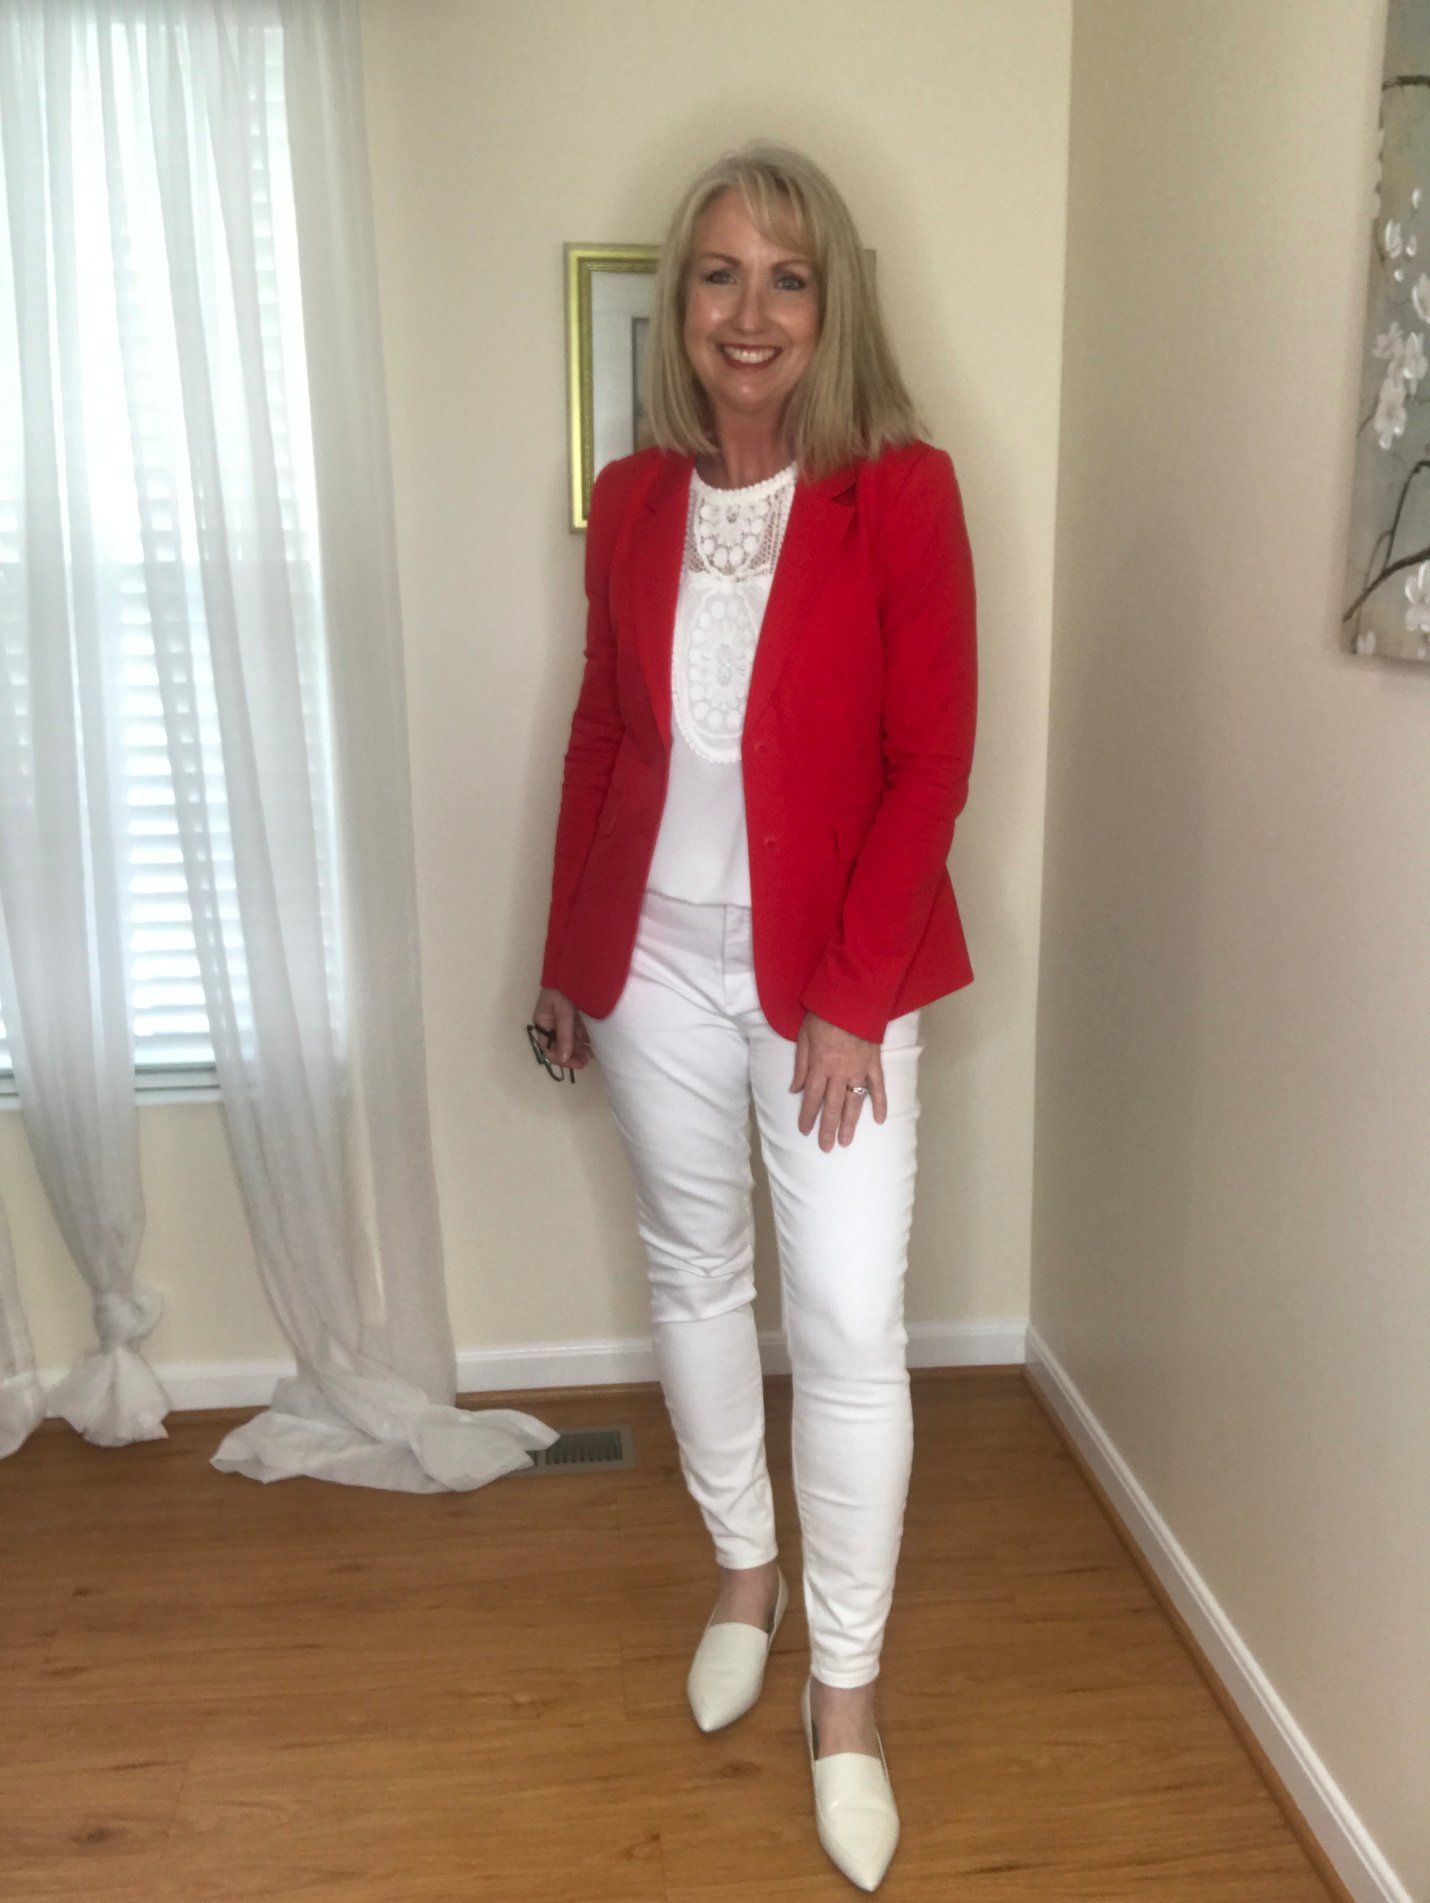 All white plus Red Jacket